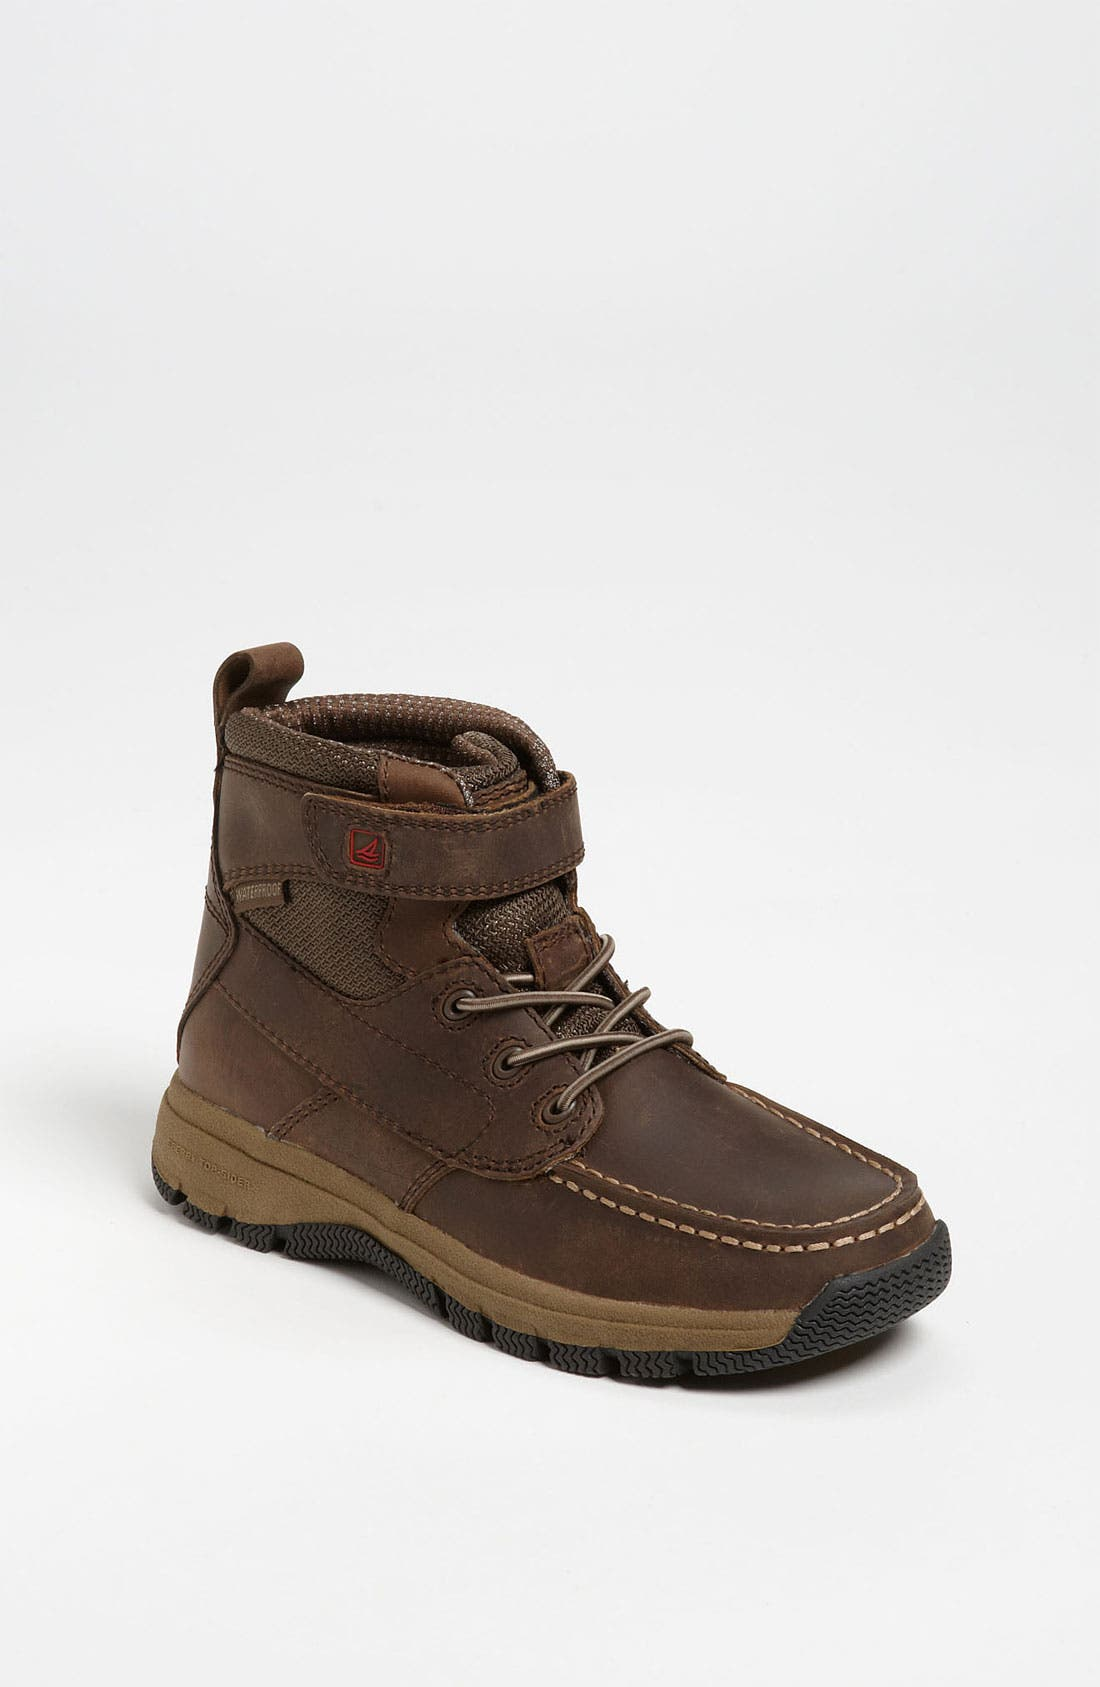 Main Image - Sperry Top-Sider® Kids 'Cascade' Boot (Walker, Toddler, Little Kid & Big Kid)